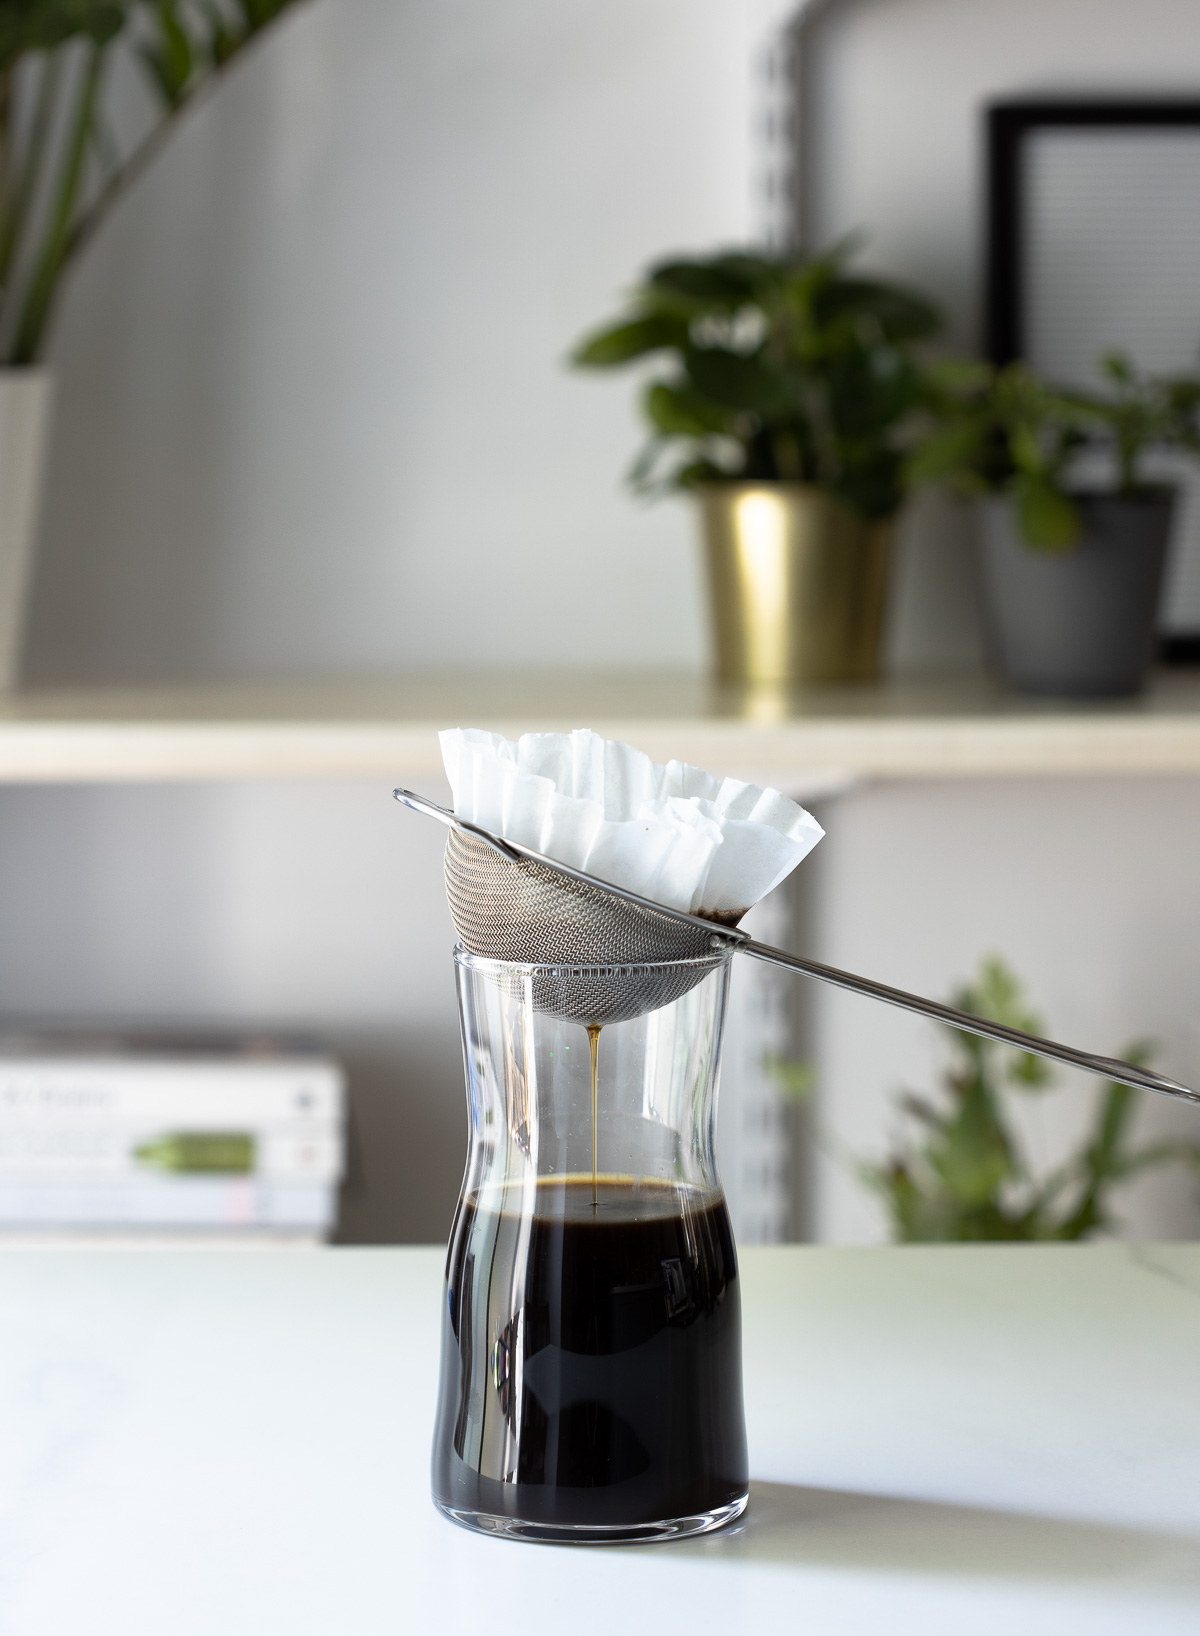 Cold brew coffee dripping through a sieve lined with a coffee filter into a tall glass canister.